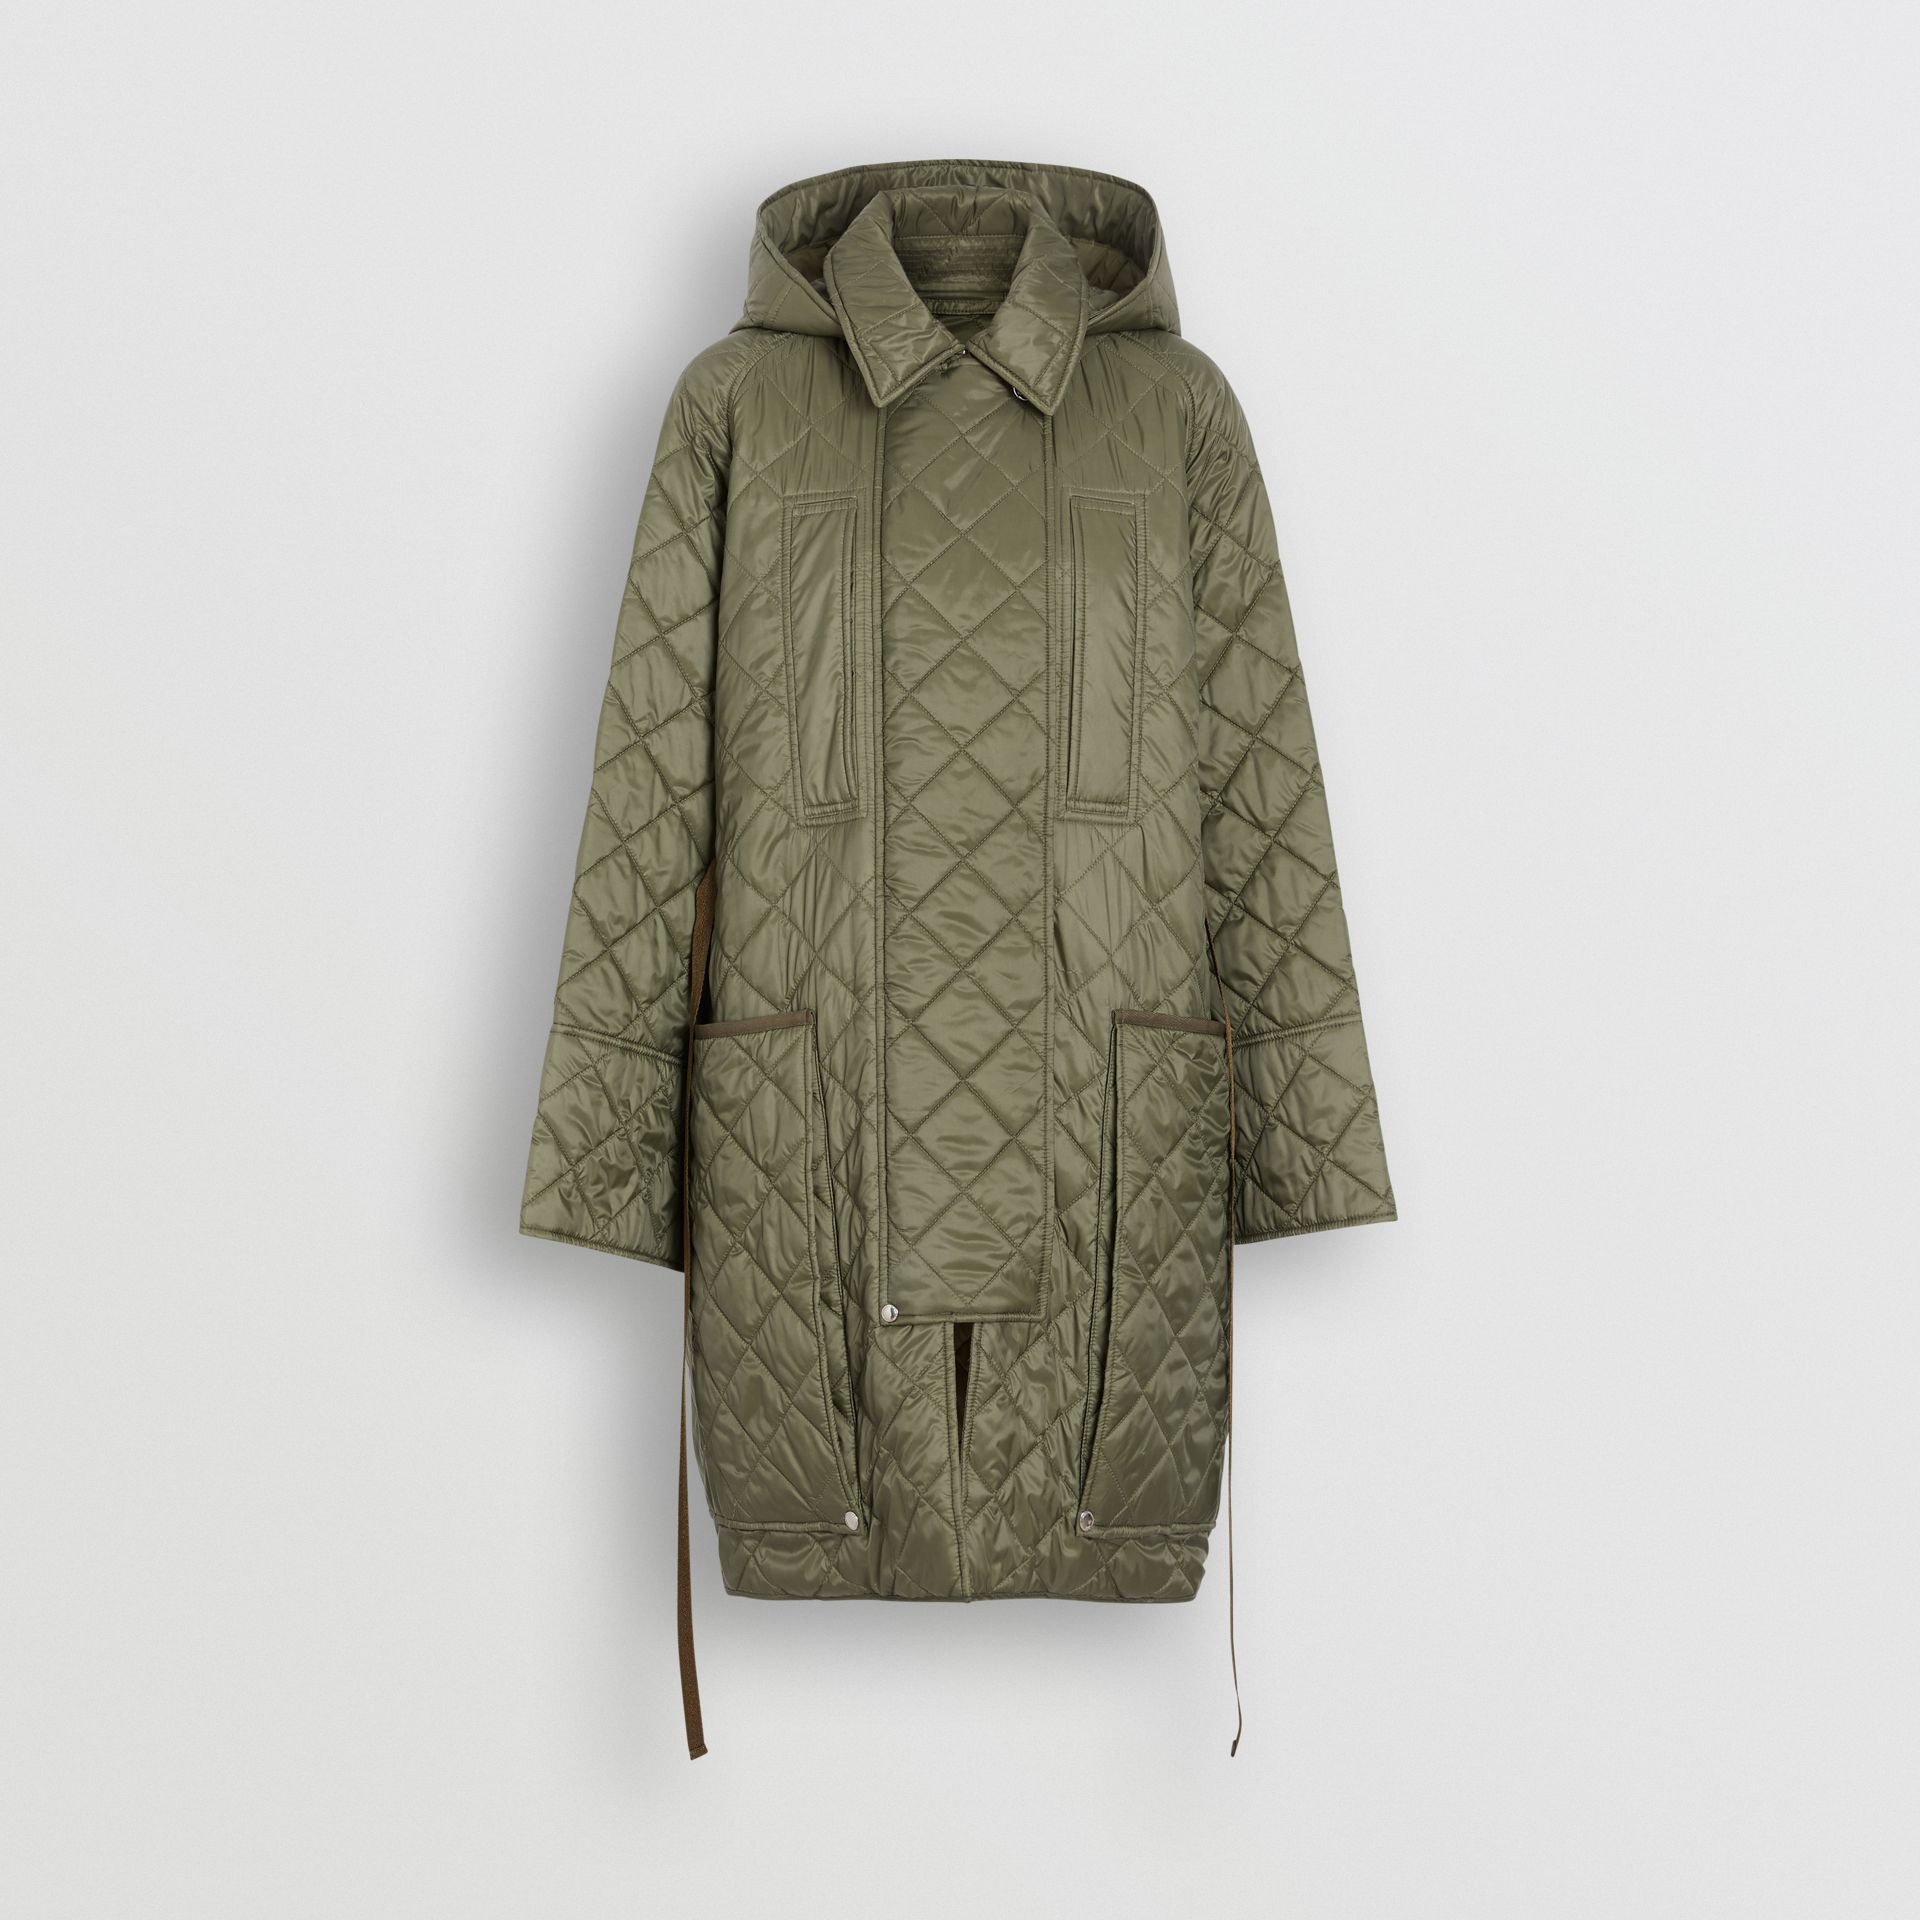 Lightweight Diamond Quilted Hooded Coat in Cadet Green - Women | Burberry United Kingdom - gallery image 3